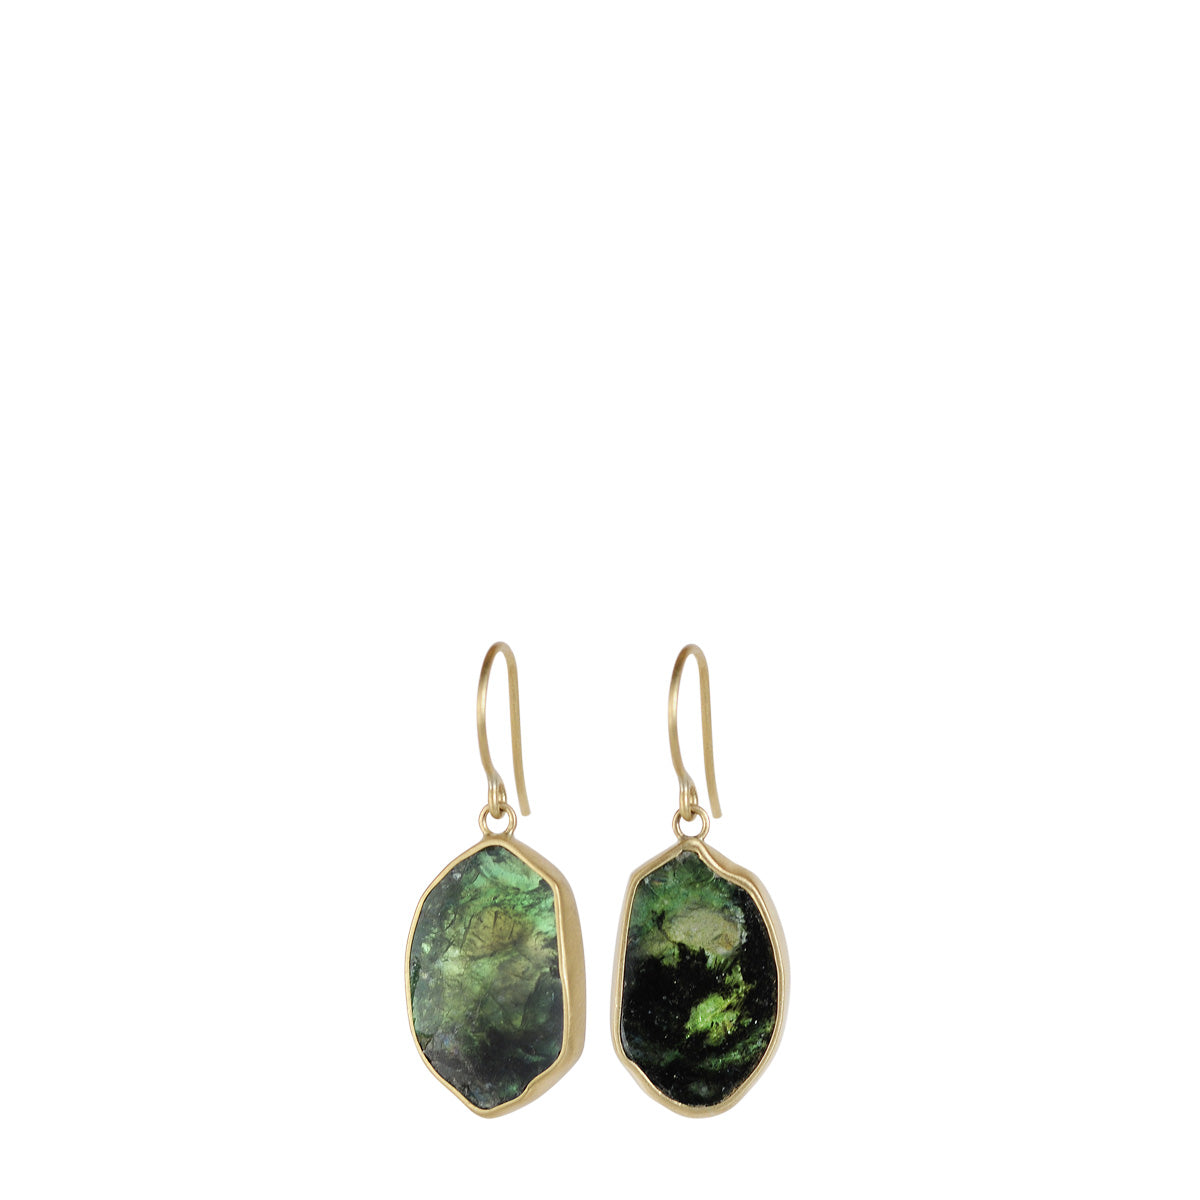 18K Gold Emerald Slice Earrings